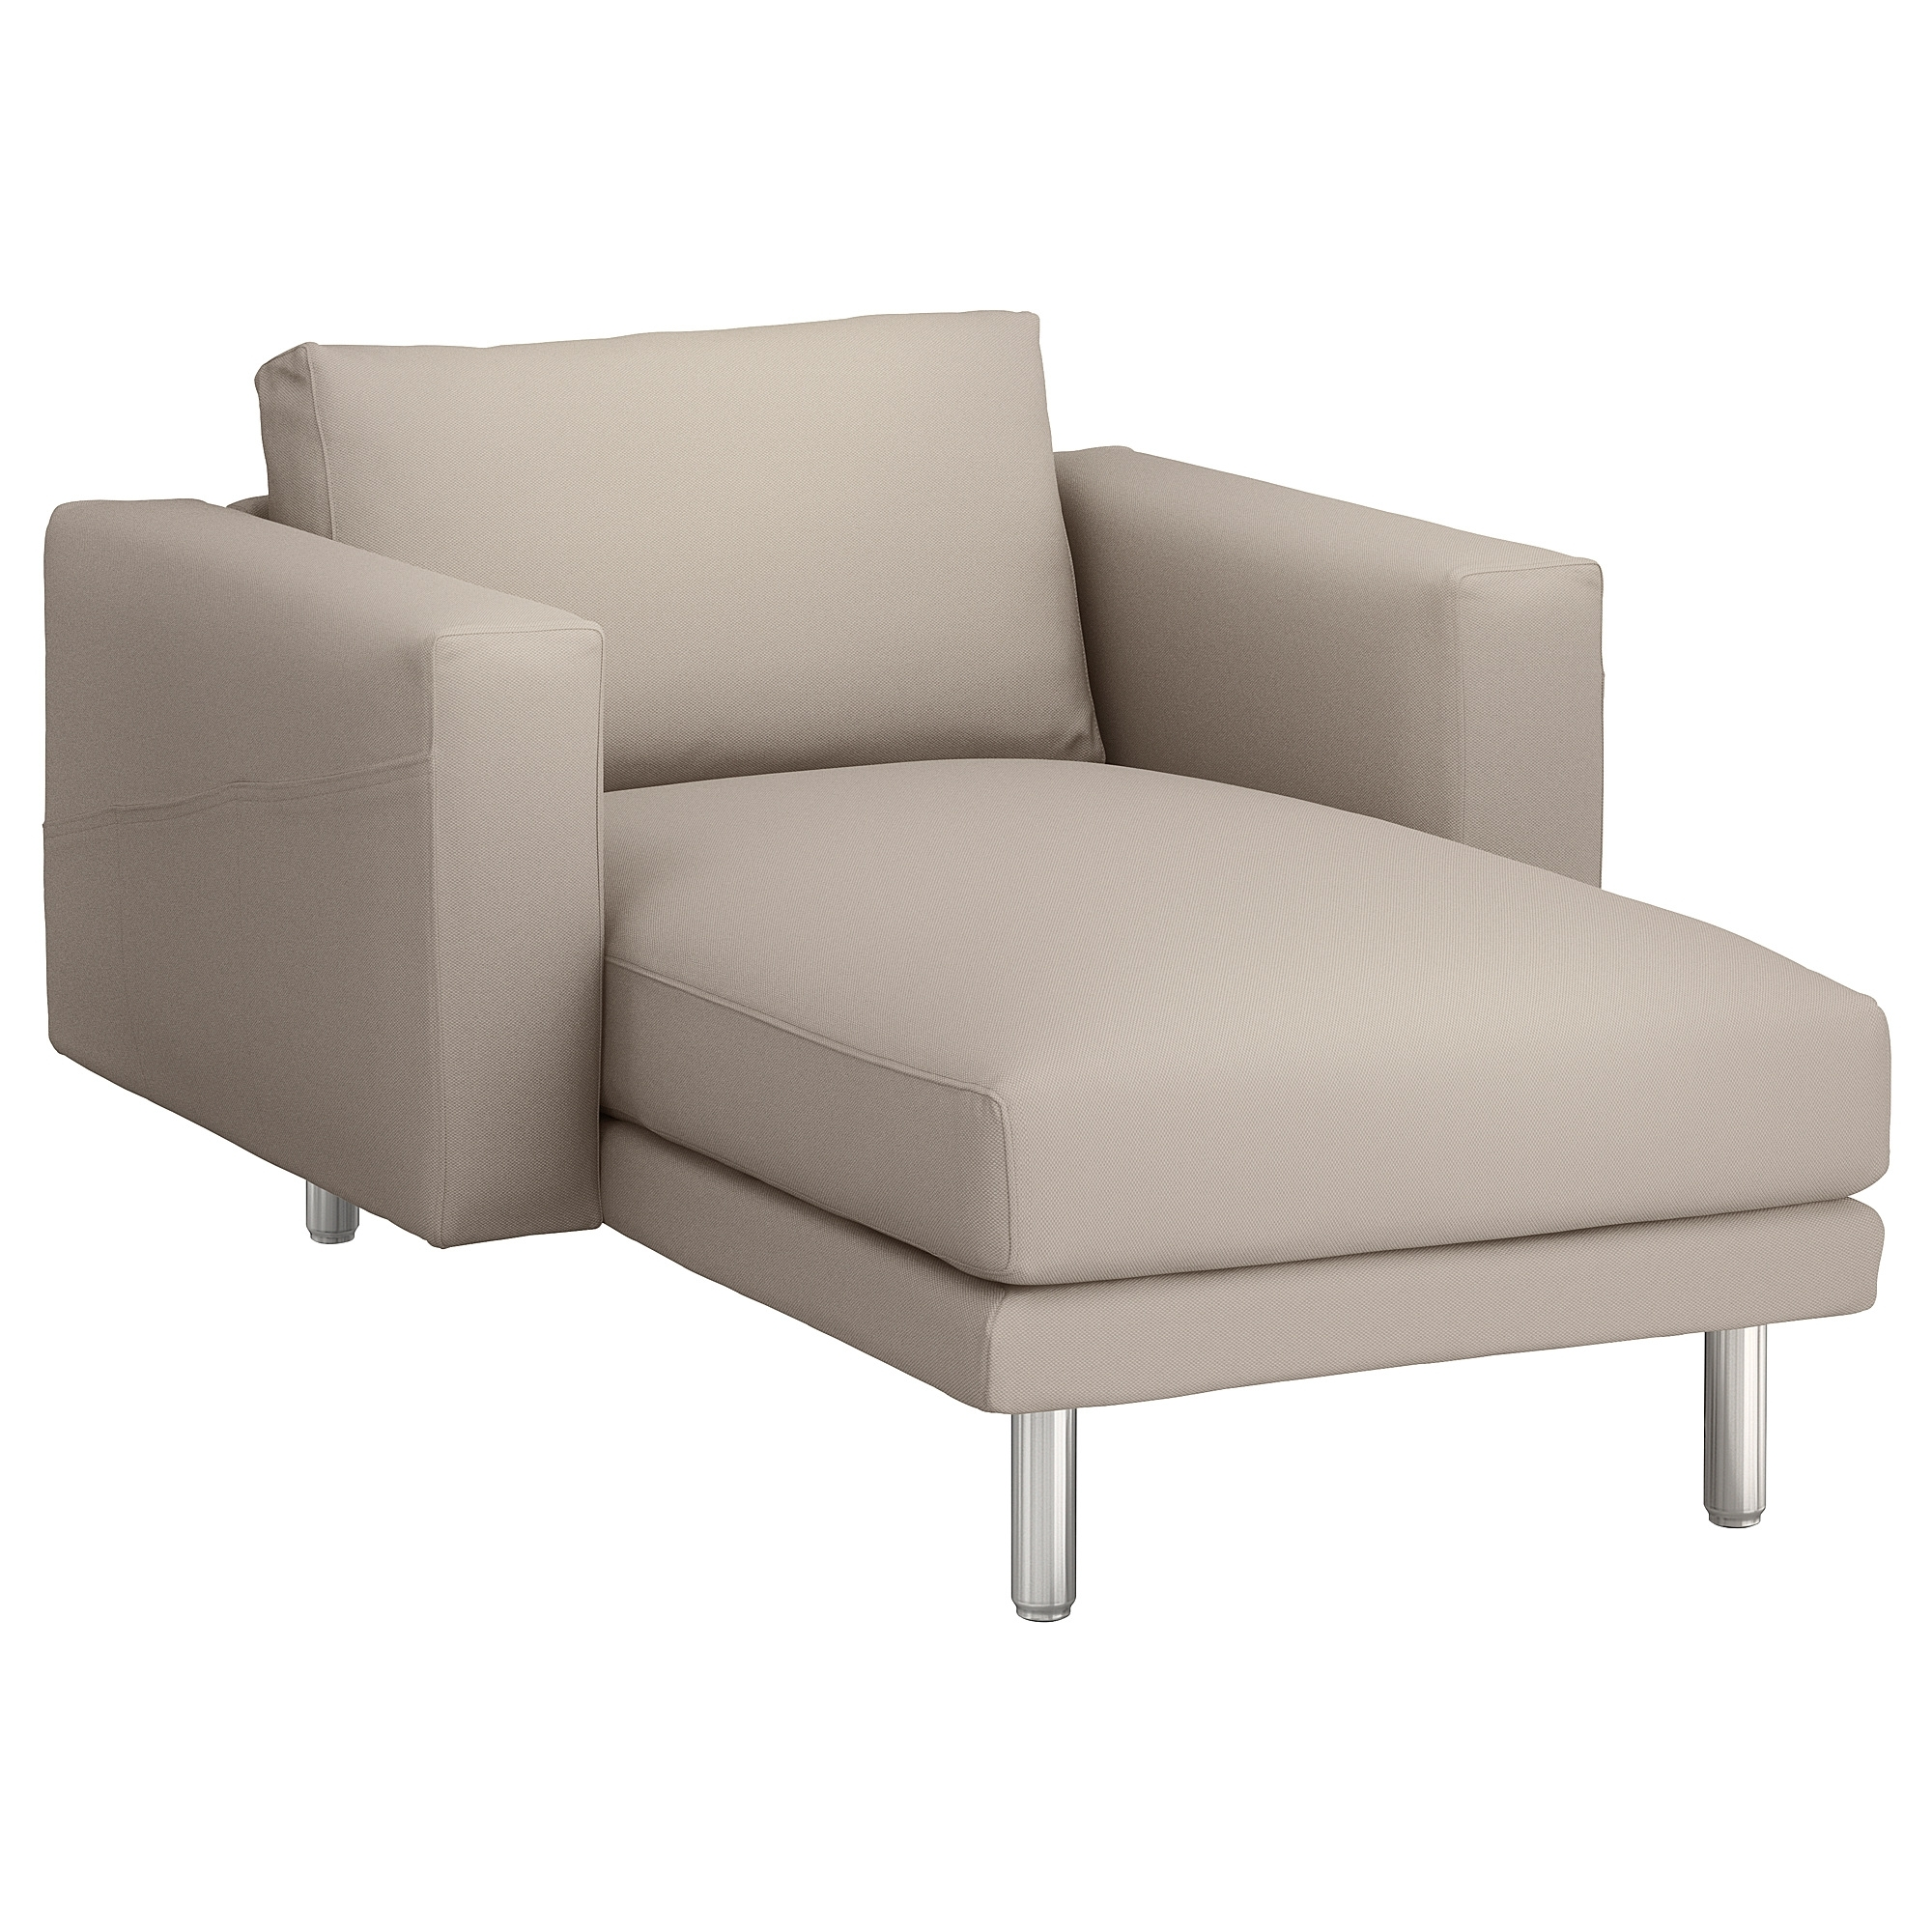 grey beige longues sofas in chaise longue the spr products terms nolhaga brochure stocksund guarantee year armchairs en ikea wood light read brown about gb